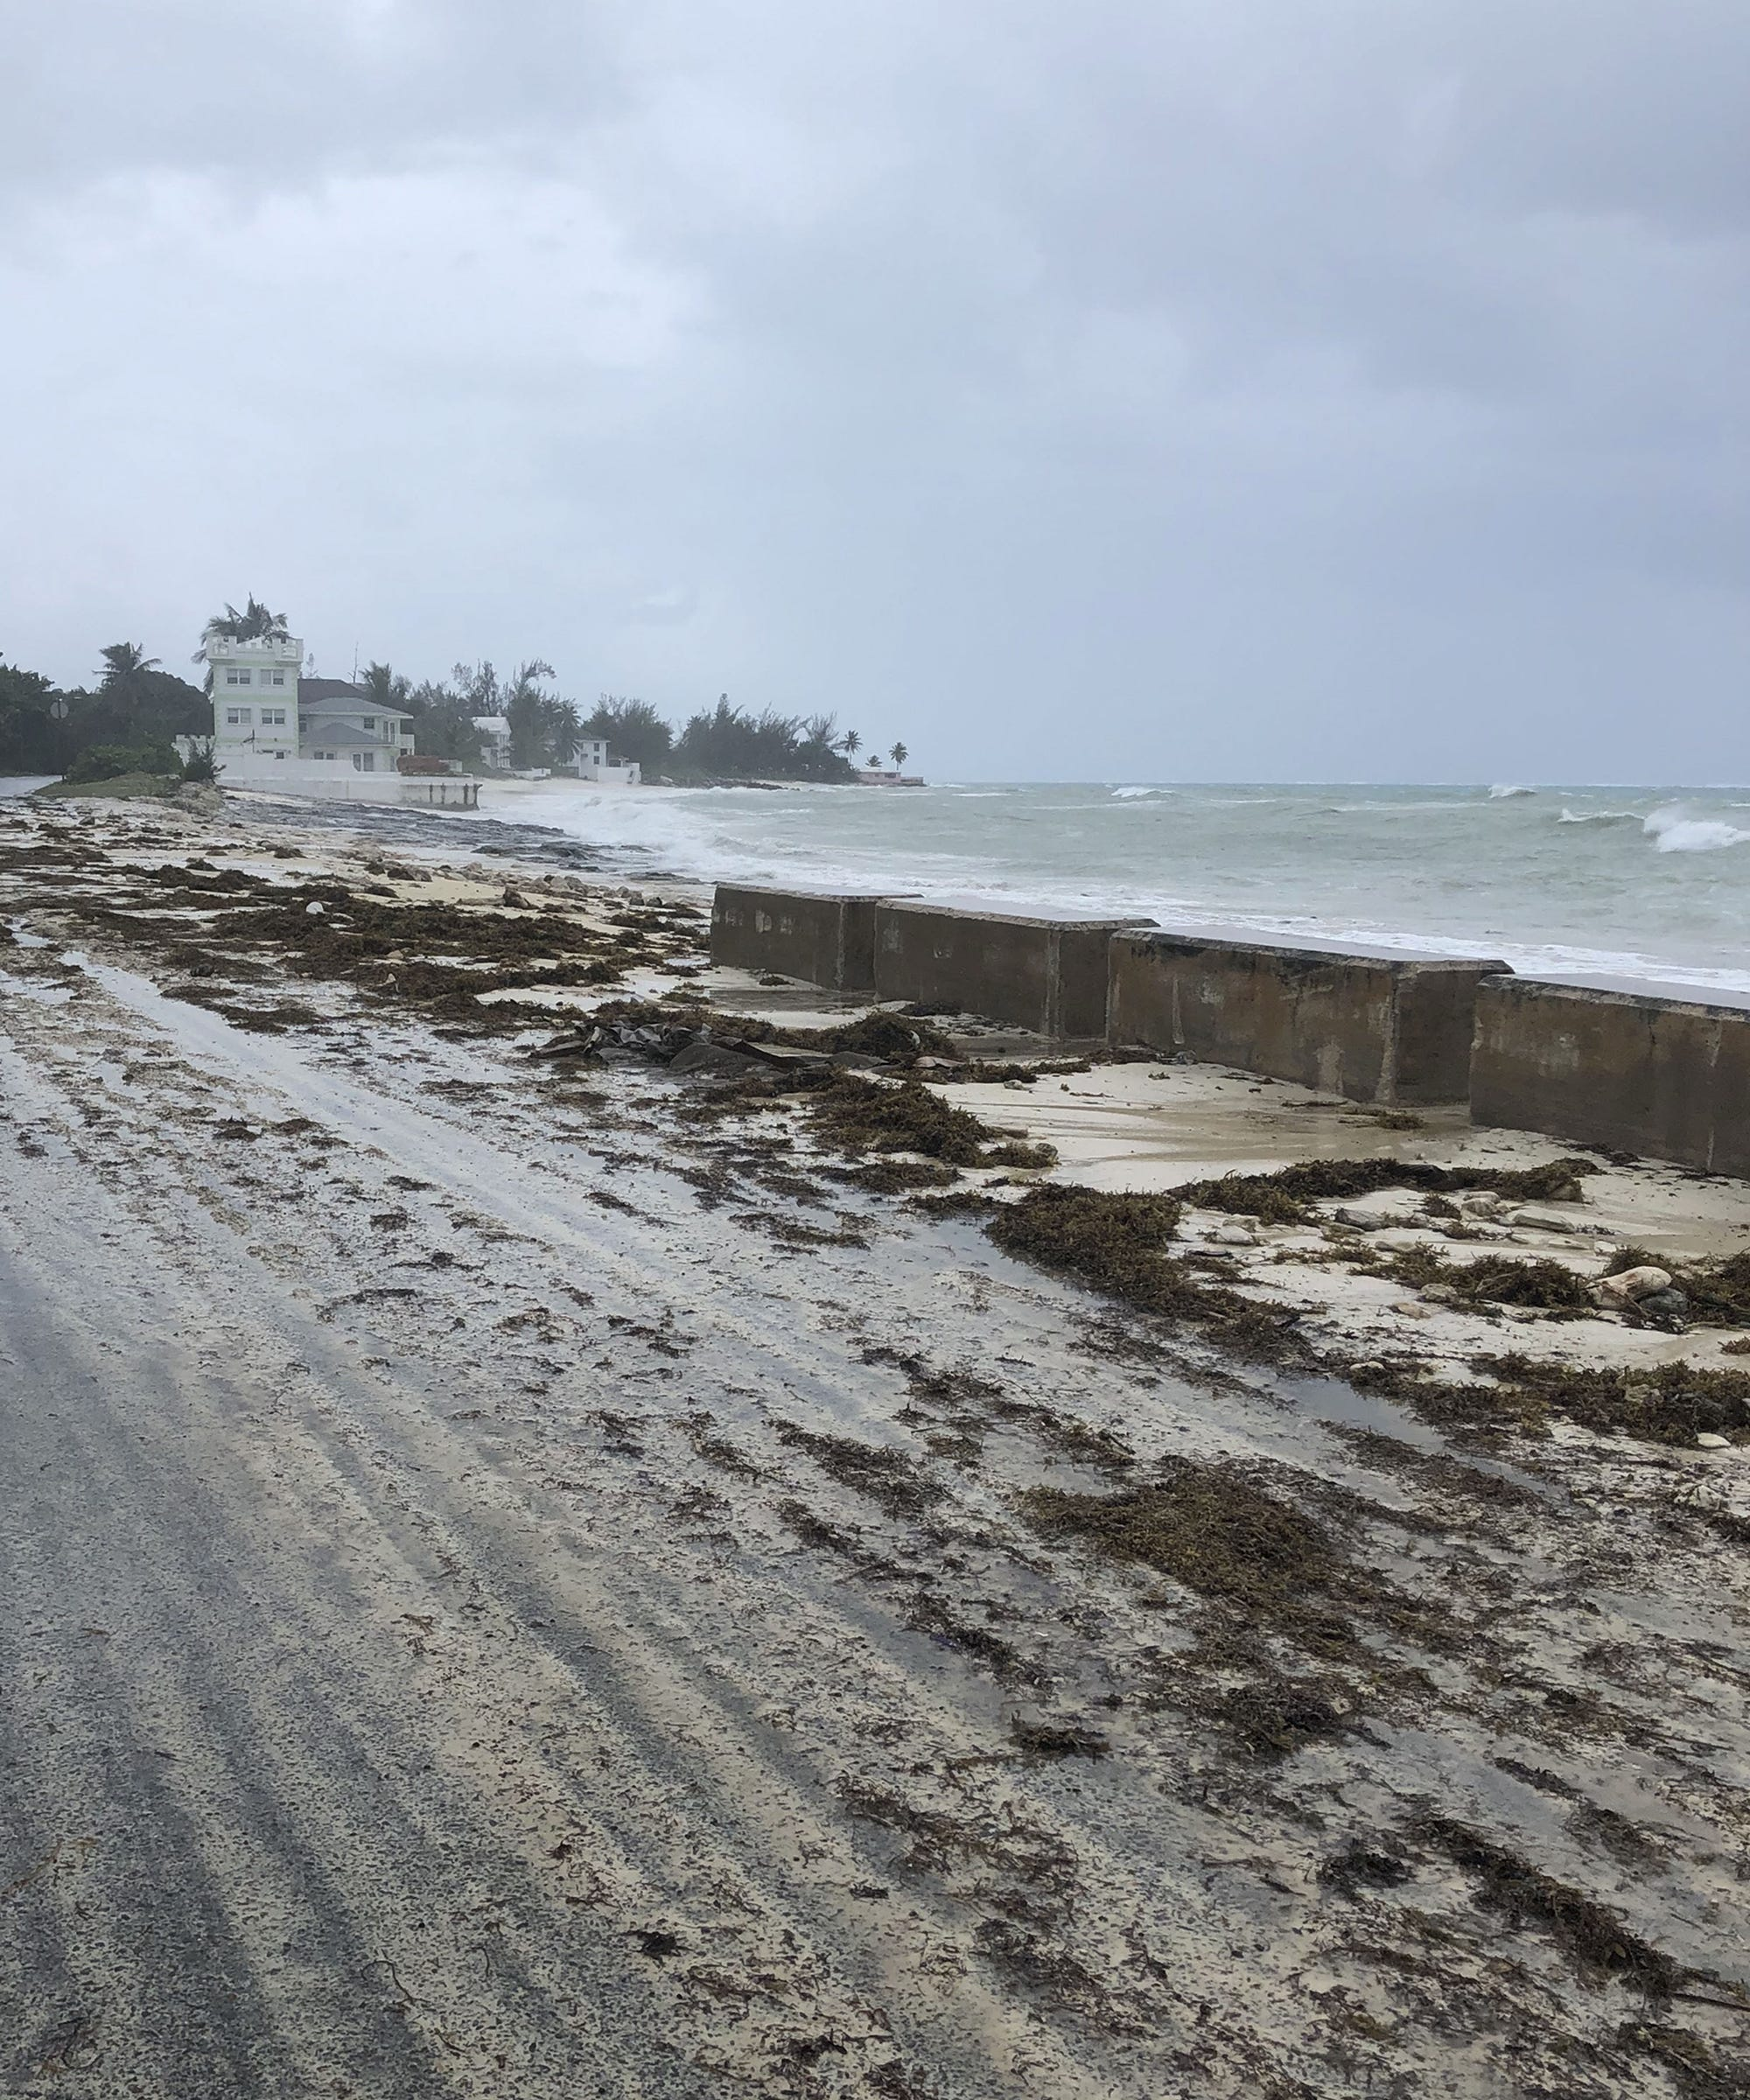 How To Help Victims Of Hurricane Dorian In The Bahamas